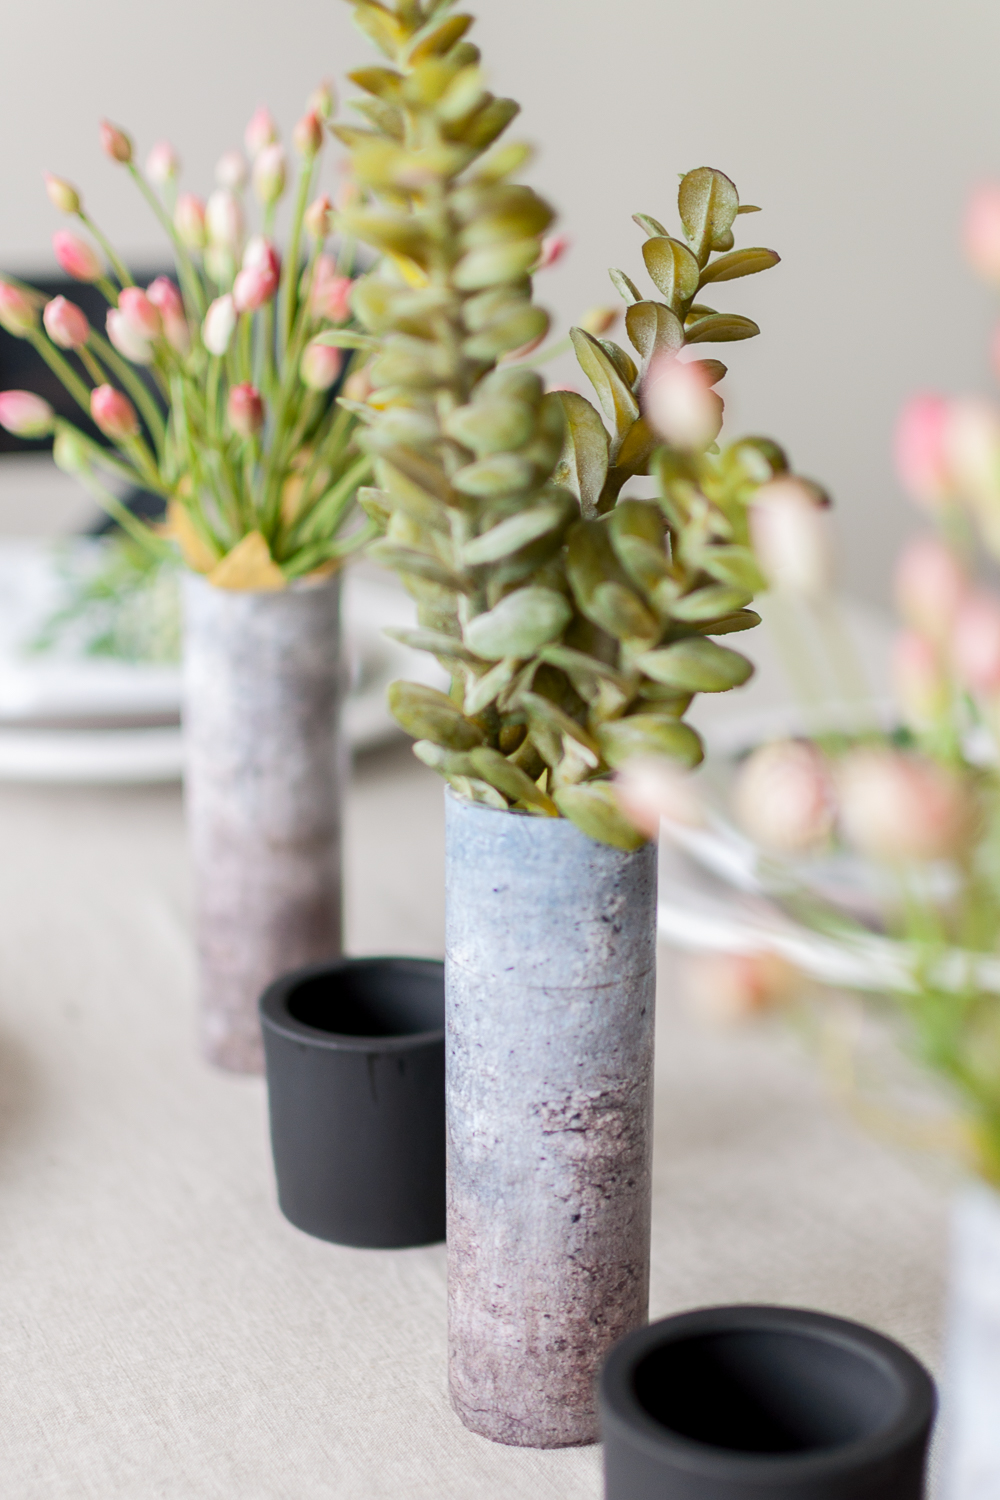 Use a little Dishwasher Safe Mod Podge to completely transform these small glass vases into a Faux Concrete Vase! This is such an easy and affordable project, visit Cherished Bliss for the how-to!